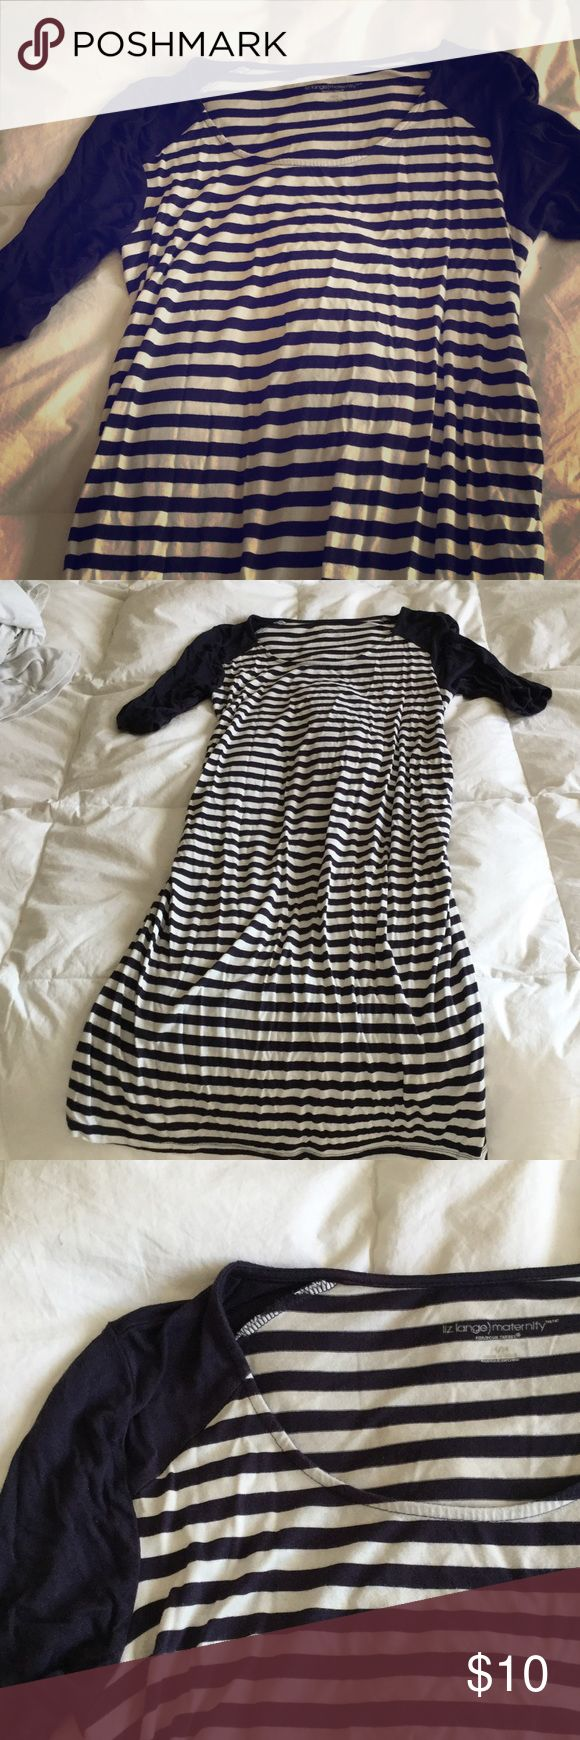 Liz Lange maternity dress Navy blue and white striped maternity dress. Super comfy and in good condition Liz Lange for Target Dresses Midi